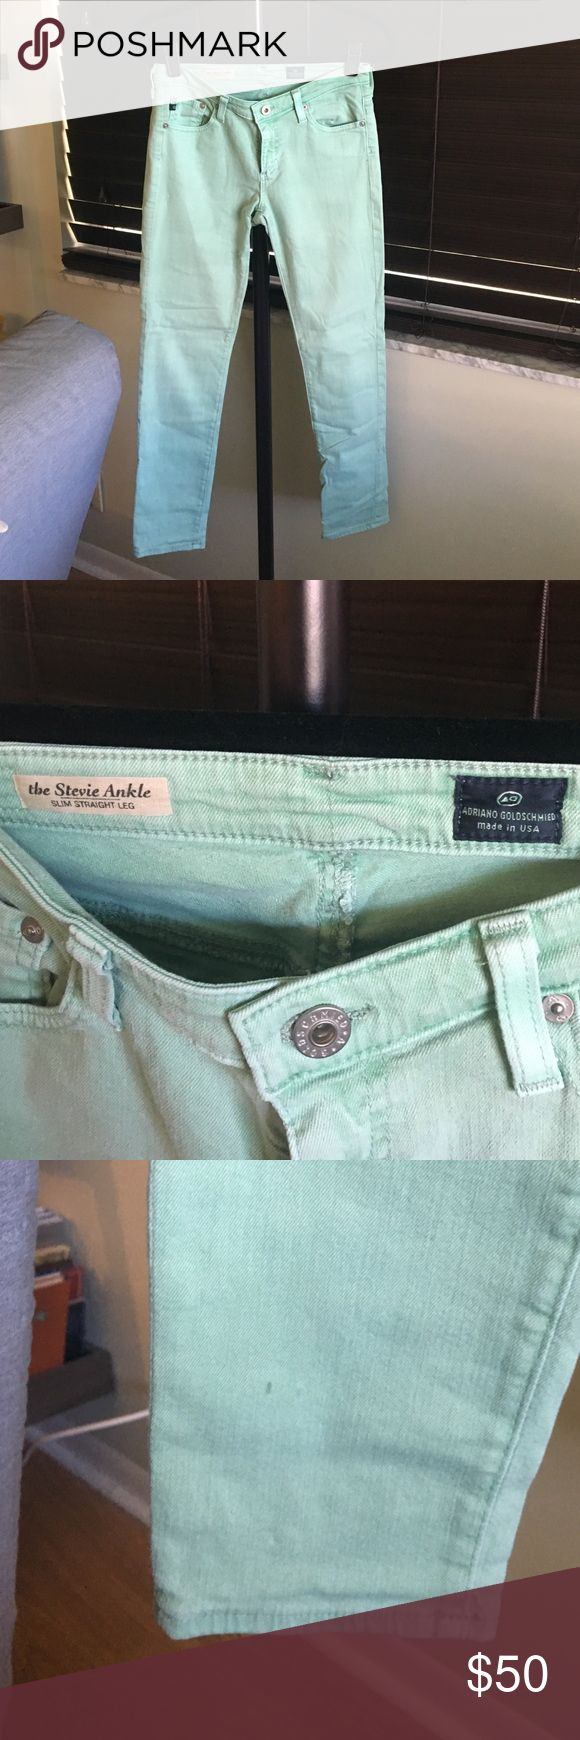 Anthropologie mint jeans Spot as seen in 3rd pic. Not noticeable when wearing. EUC. Offers welcome:-) Anthropologie Pants